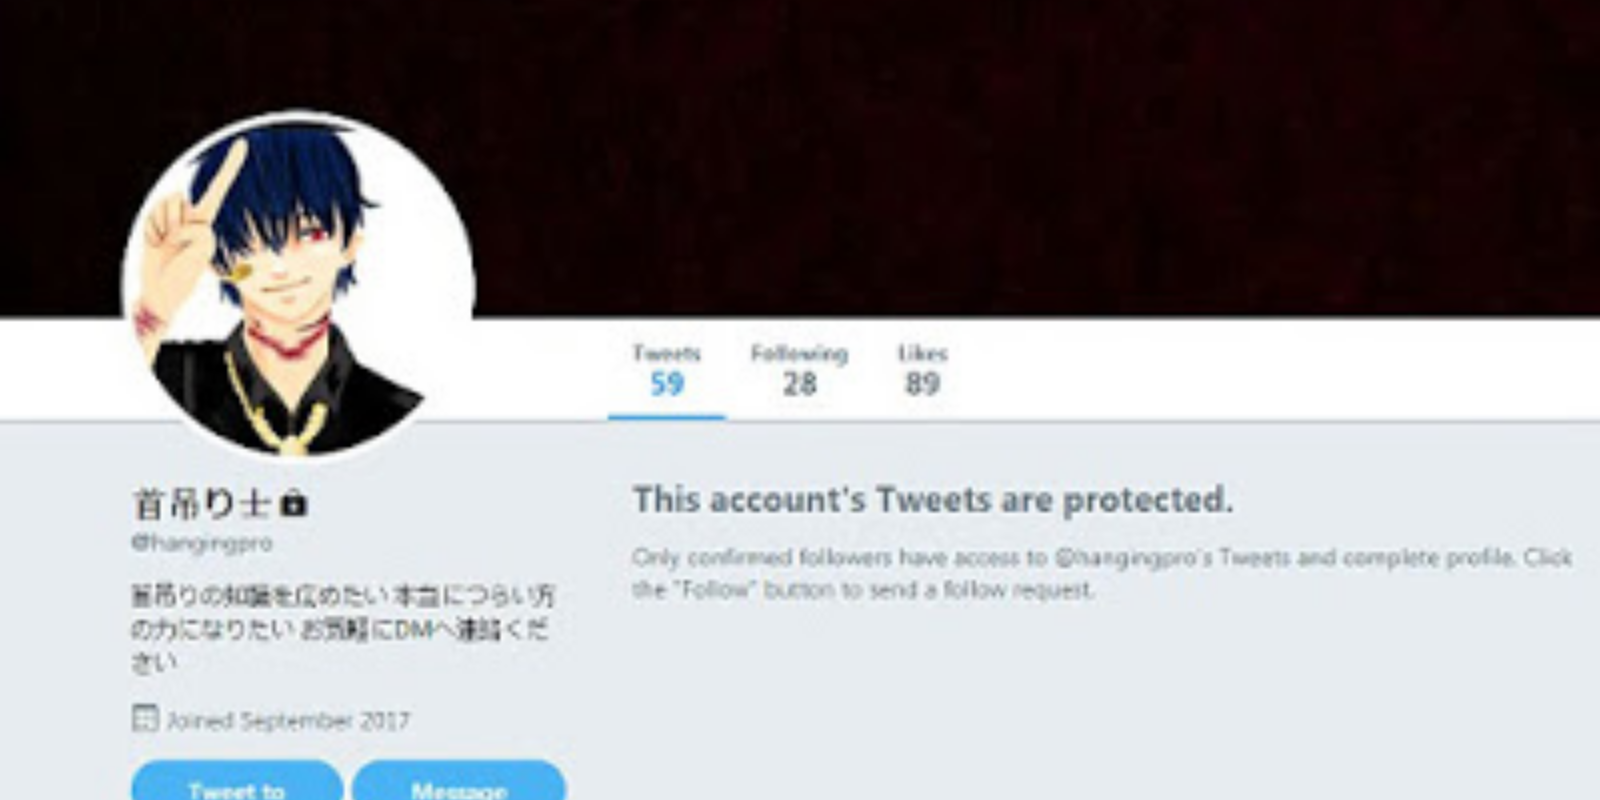 Japanese 'Twitter killer' lawyers claims his victims consented, he disagrees